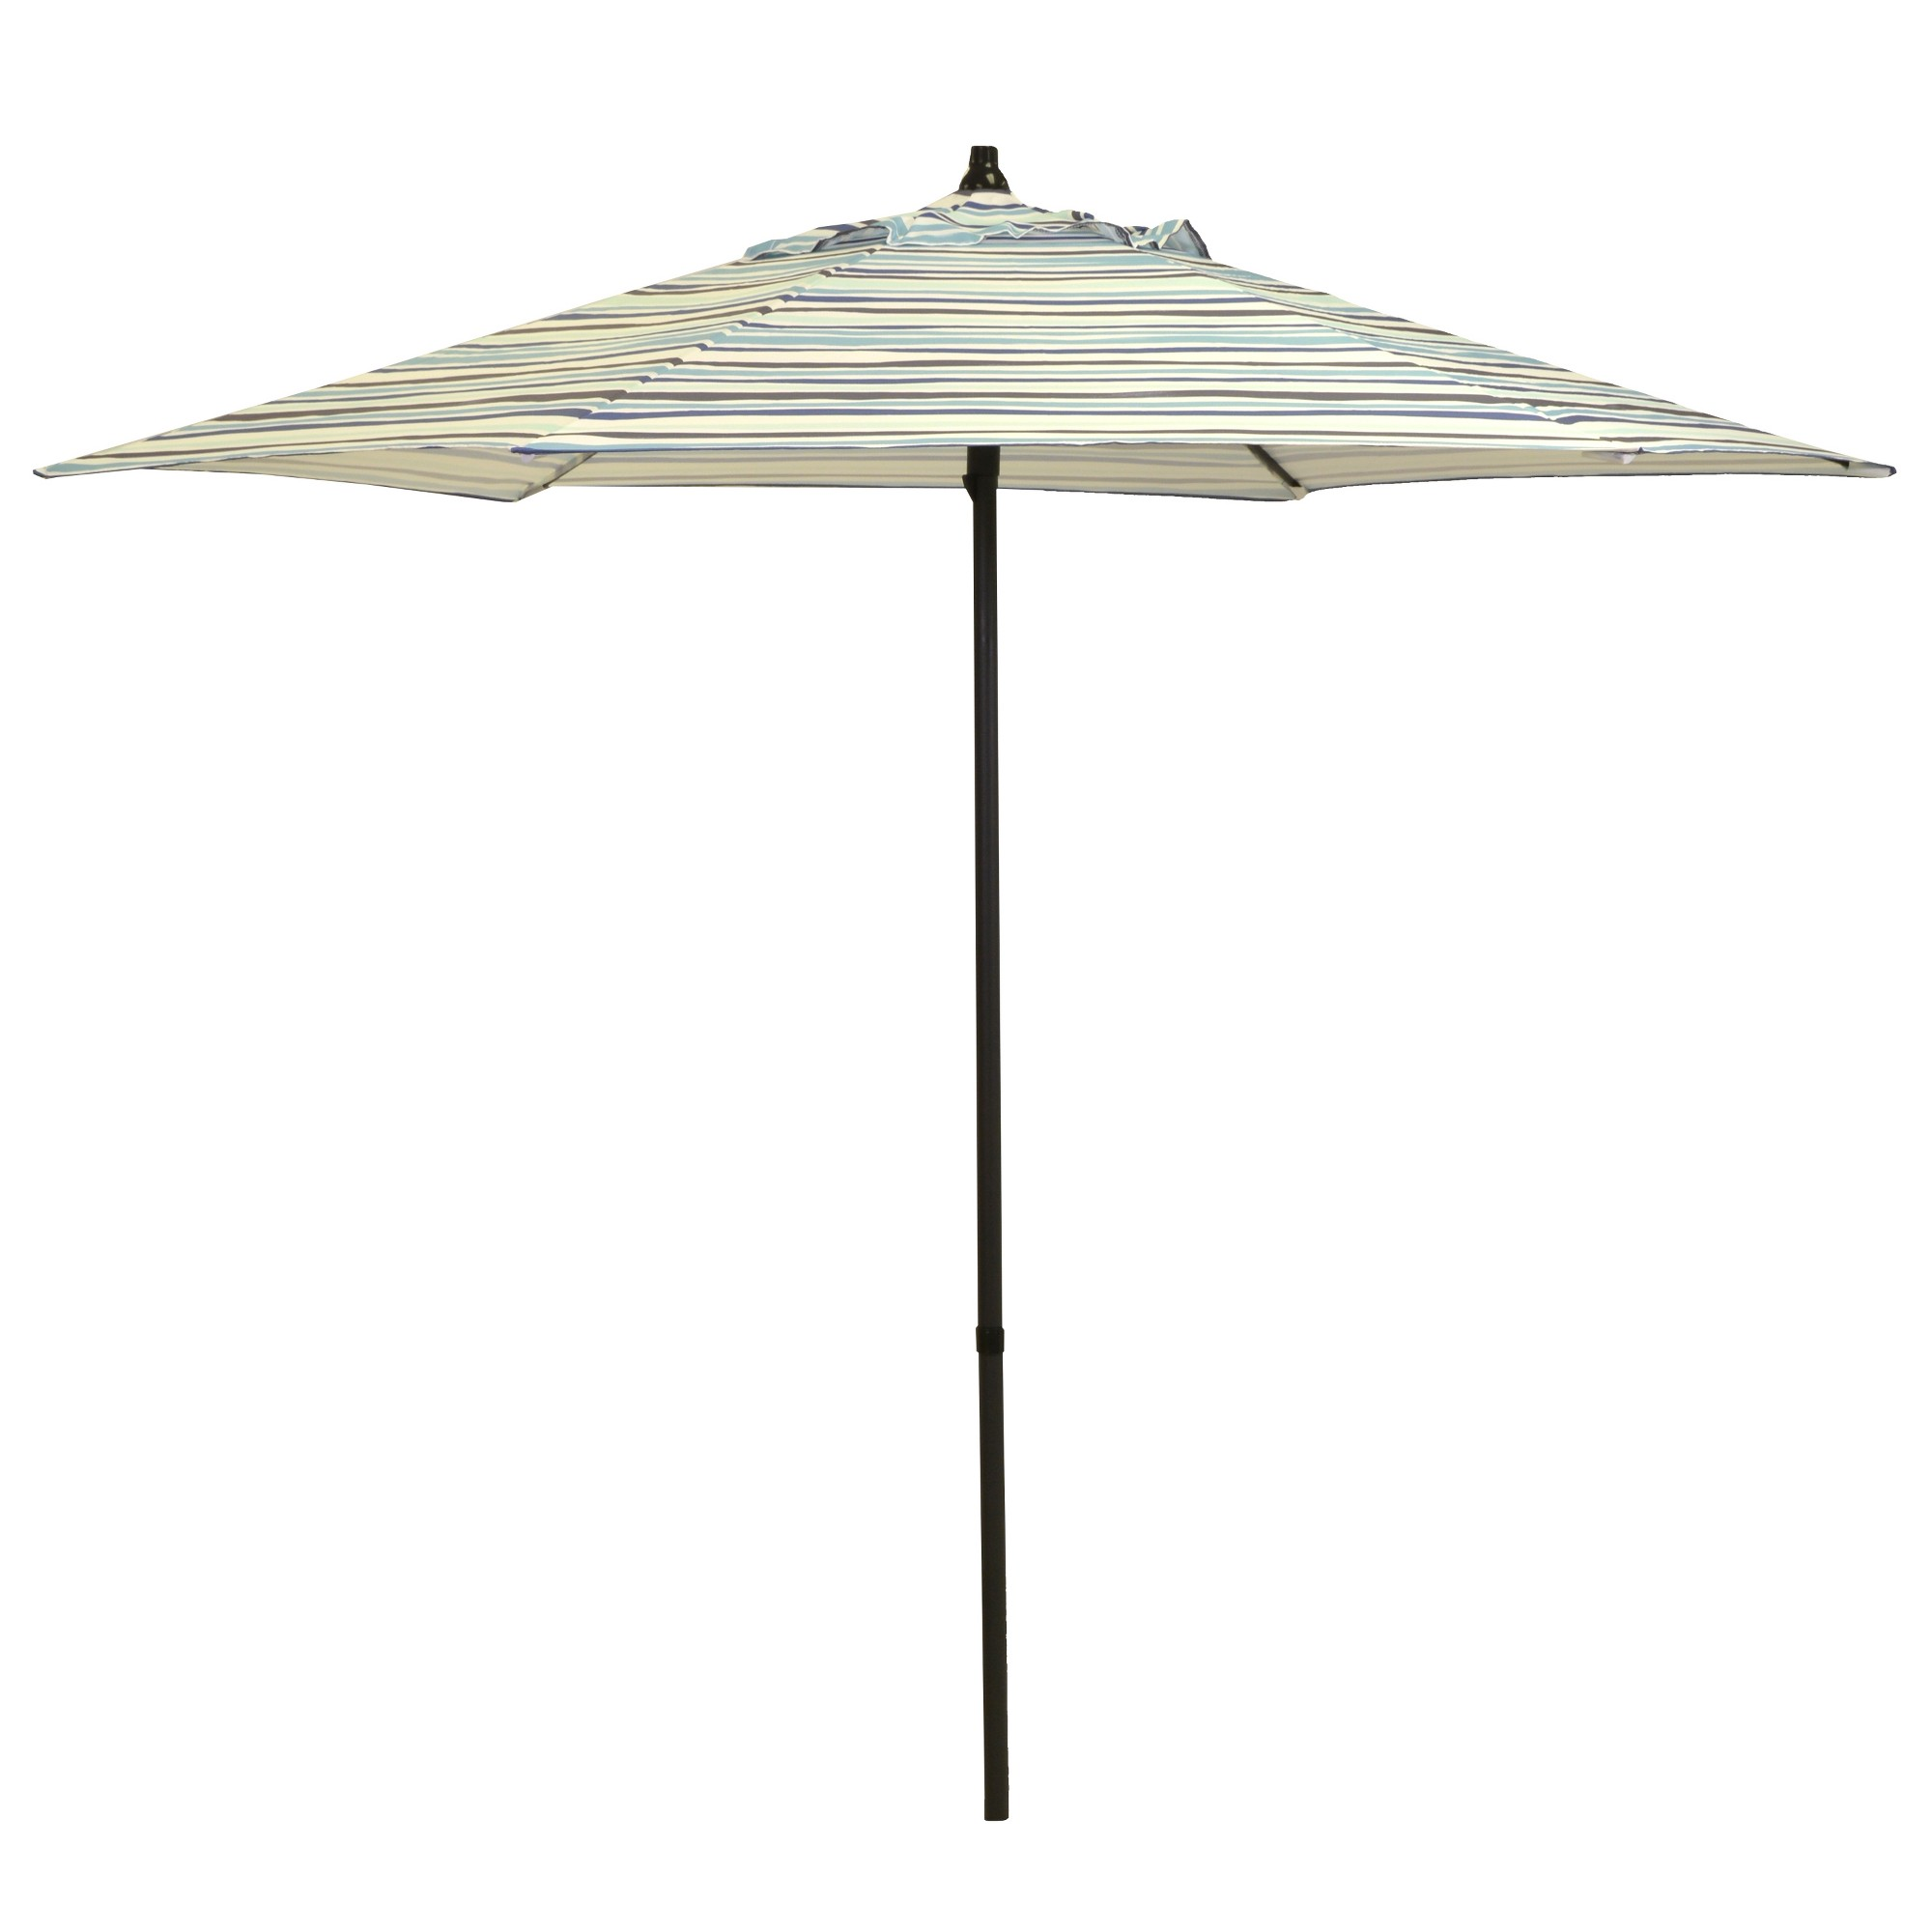 round patio umbrella turquoise black pole room essentials storage accent table tablecloth square rattan garden side pier one mirrored nightstand mid century kidney coffee end